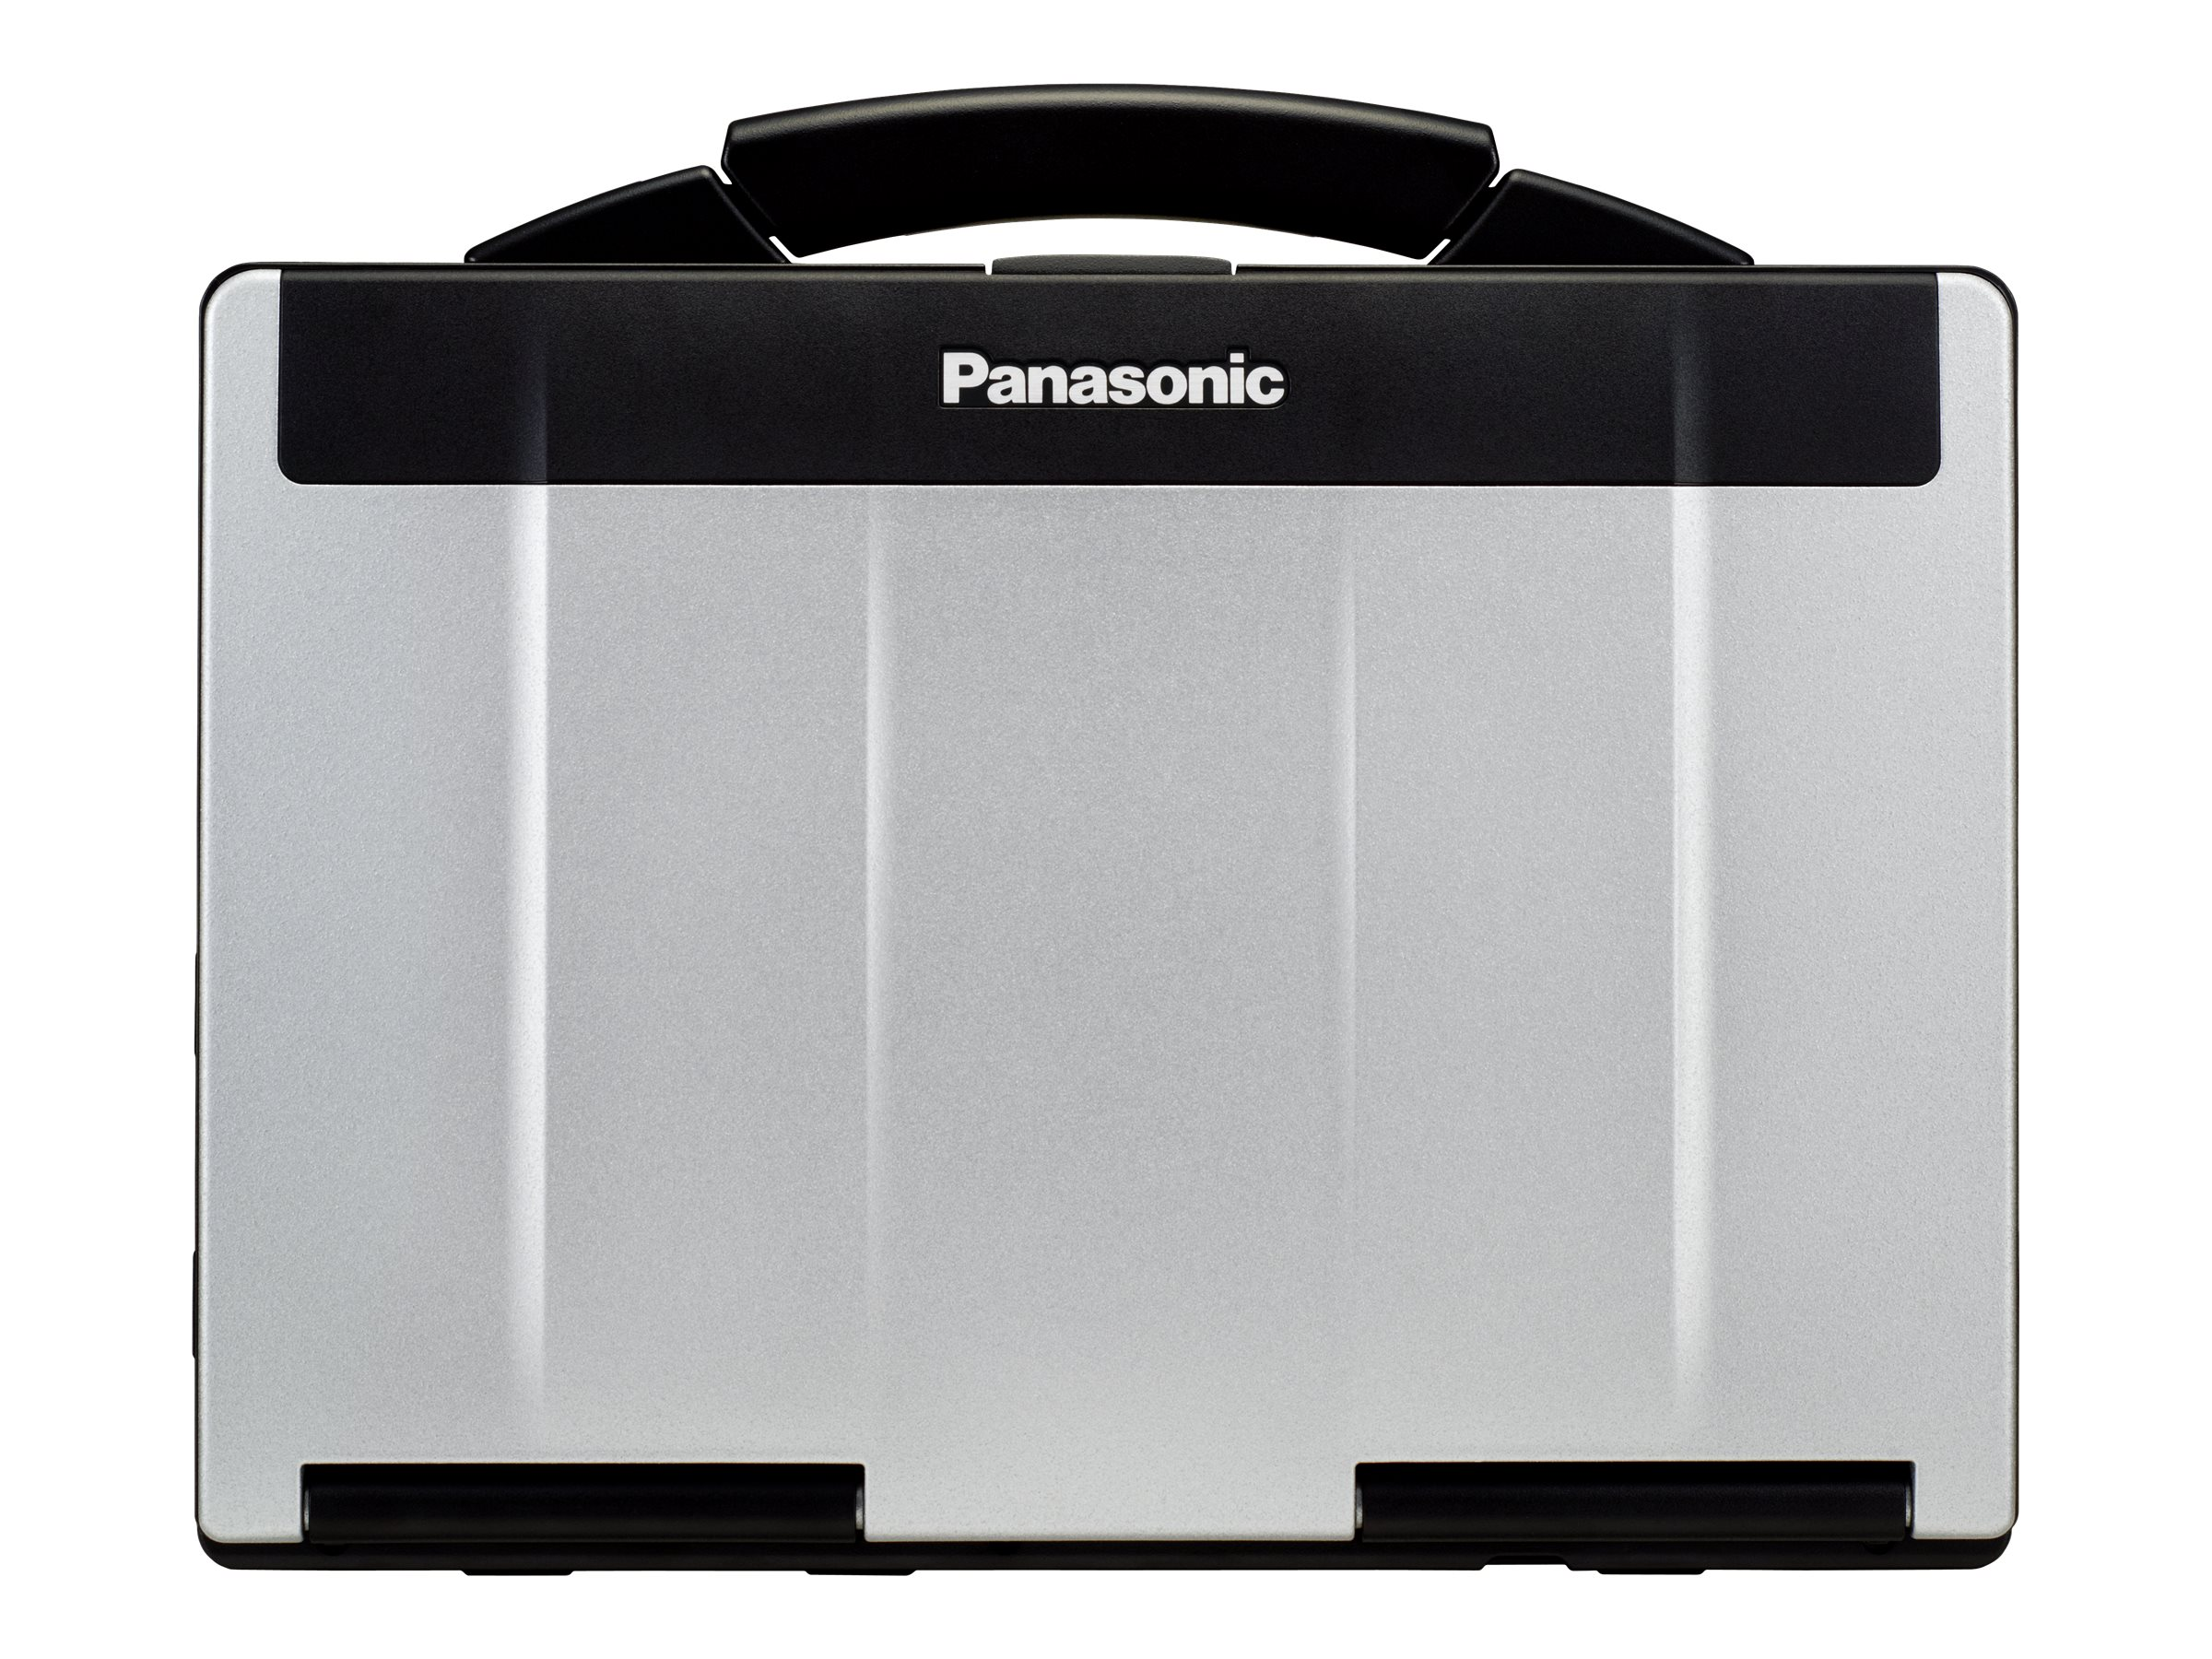 Panasonic Toughbook 53 2GHz Core i5 14in display, CF-532U64NNM